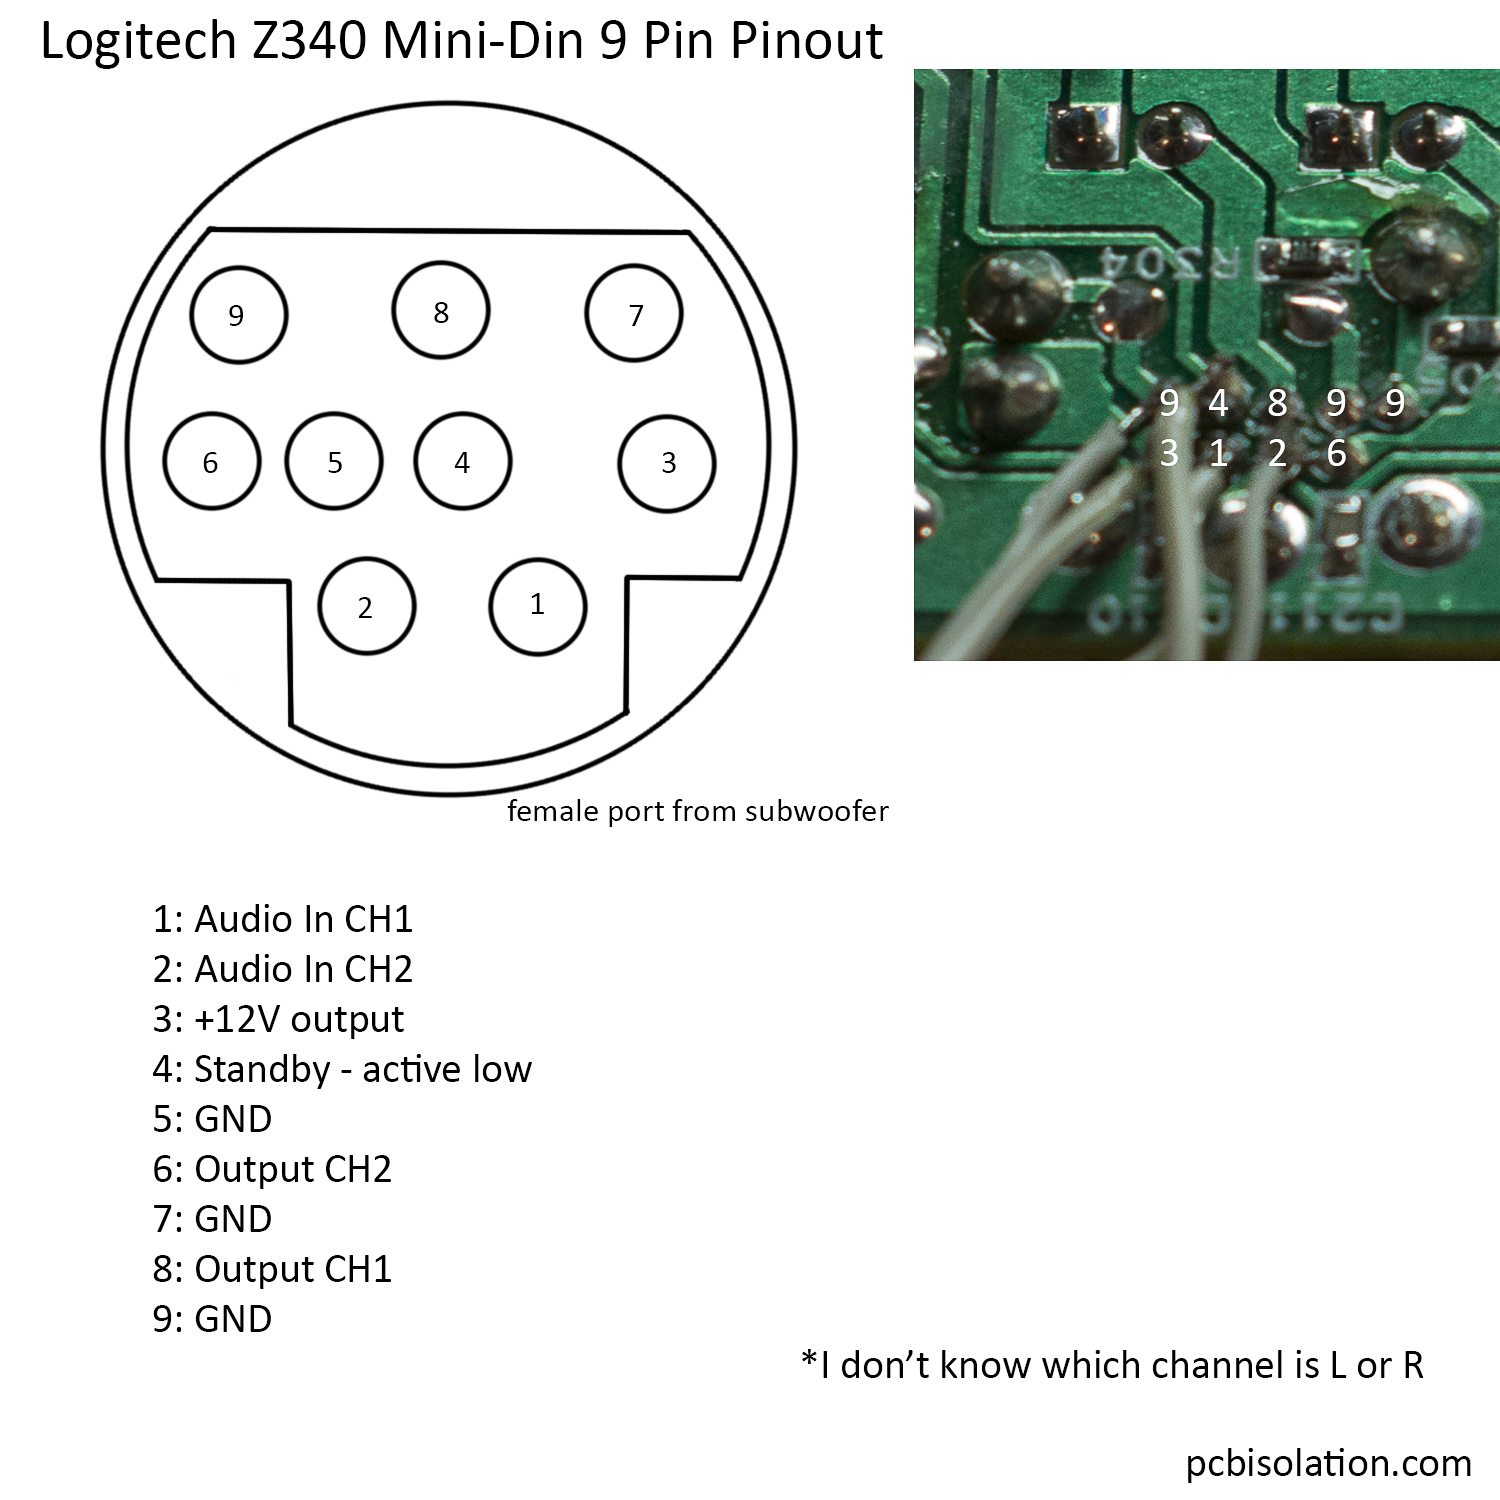 logitech z340 2 1 pinout and reuse pcb isolation rh pcbisolation com Schematic Circuit Diagram 3-Way Switch Wiring Diagram